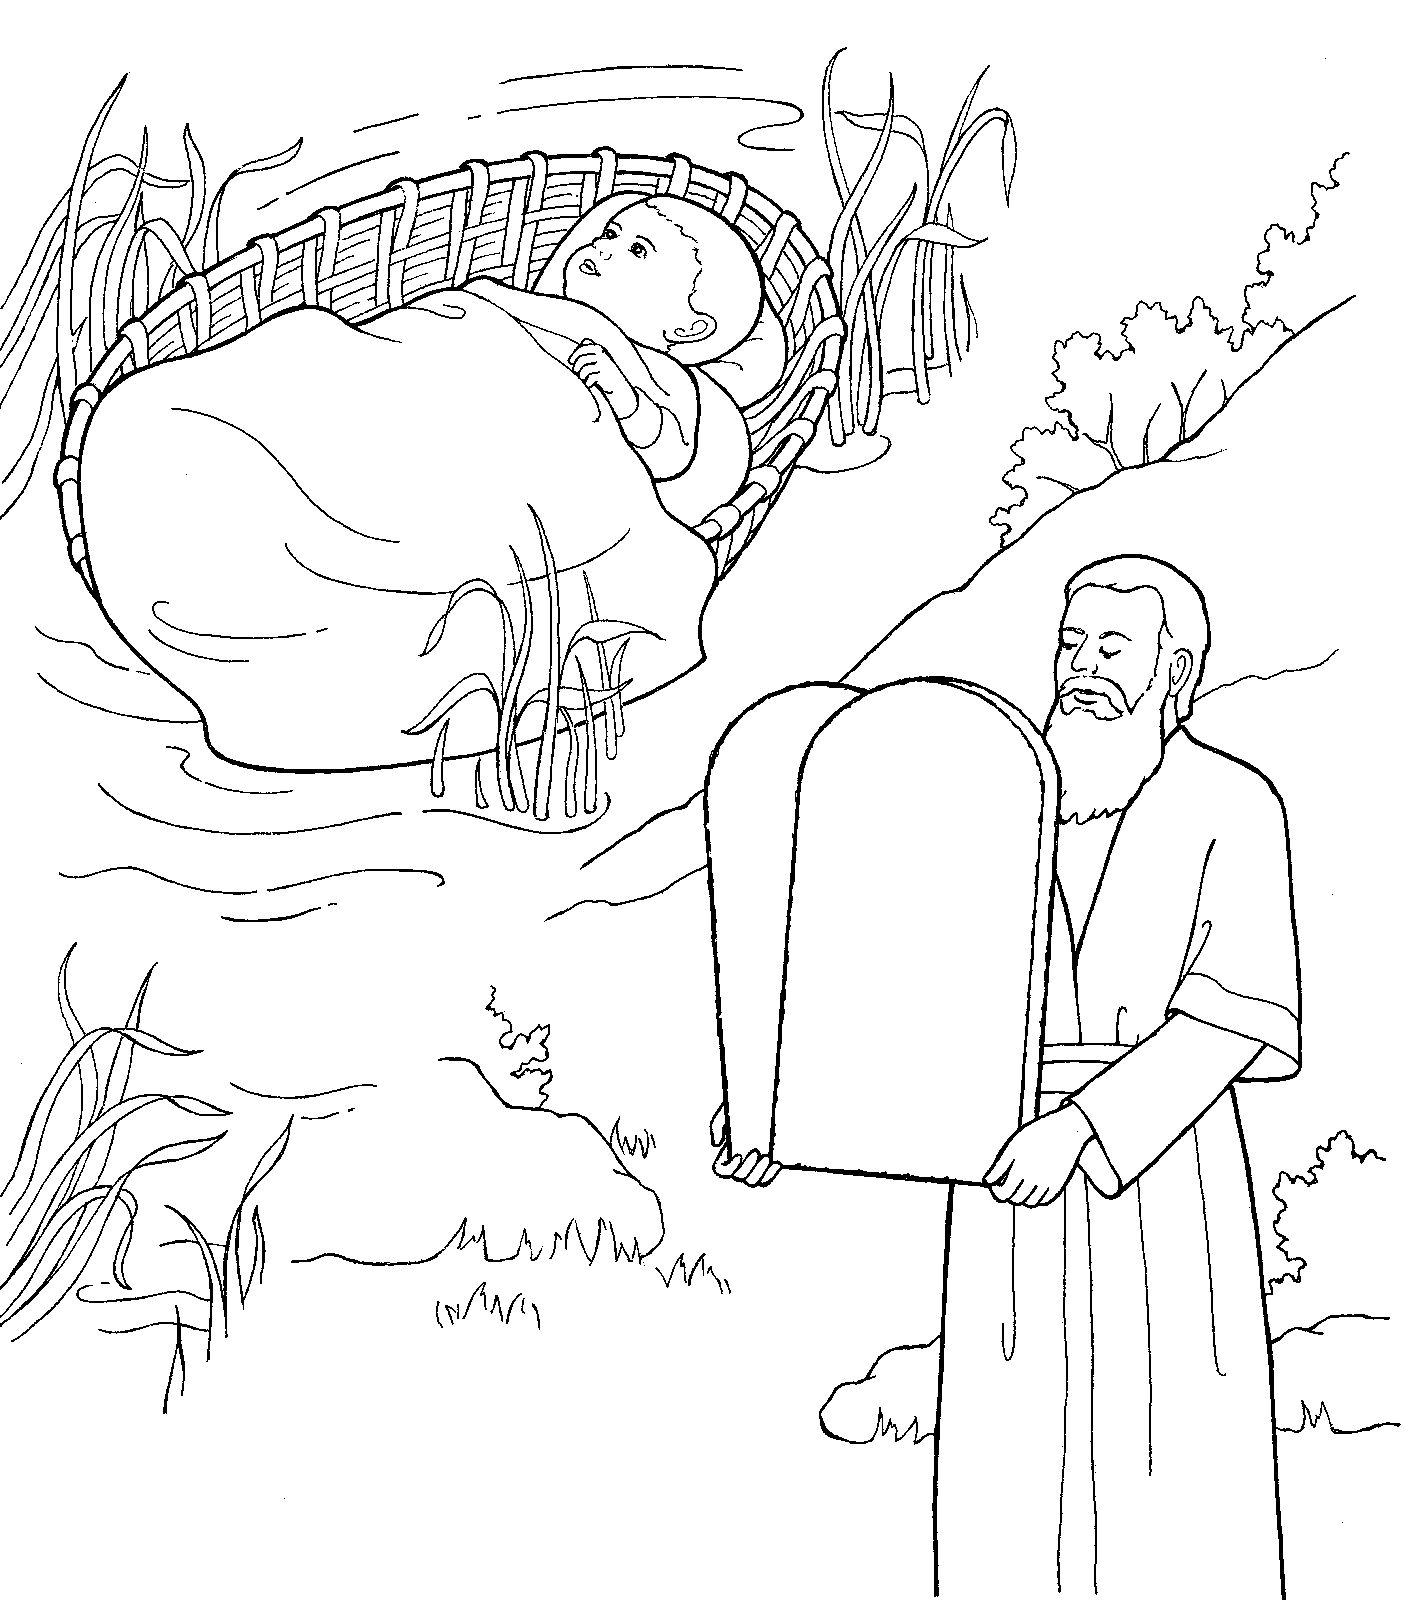 baby moses and grownup moses with the 10 commandments httpwww ten commandmentsfree coloring pagesword